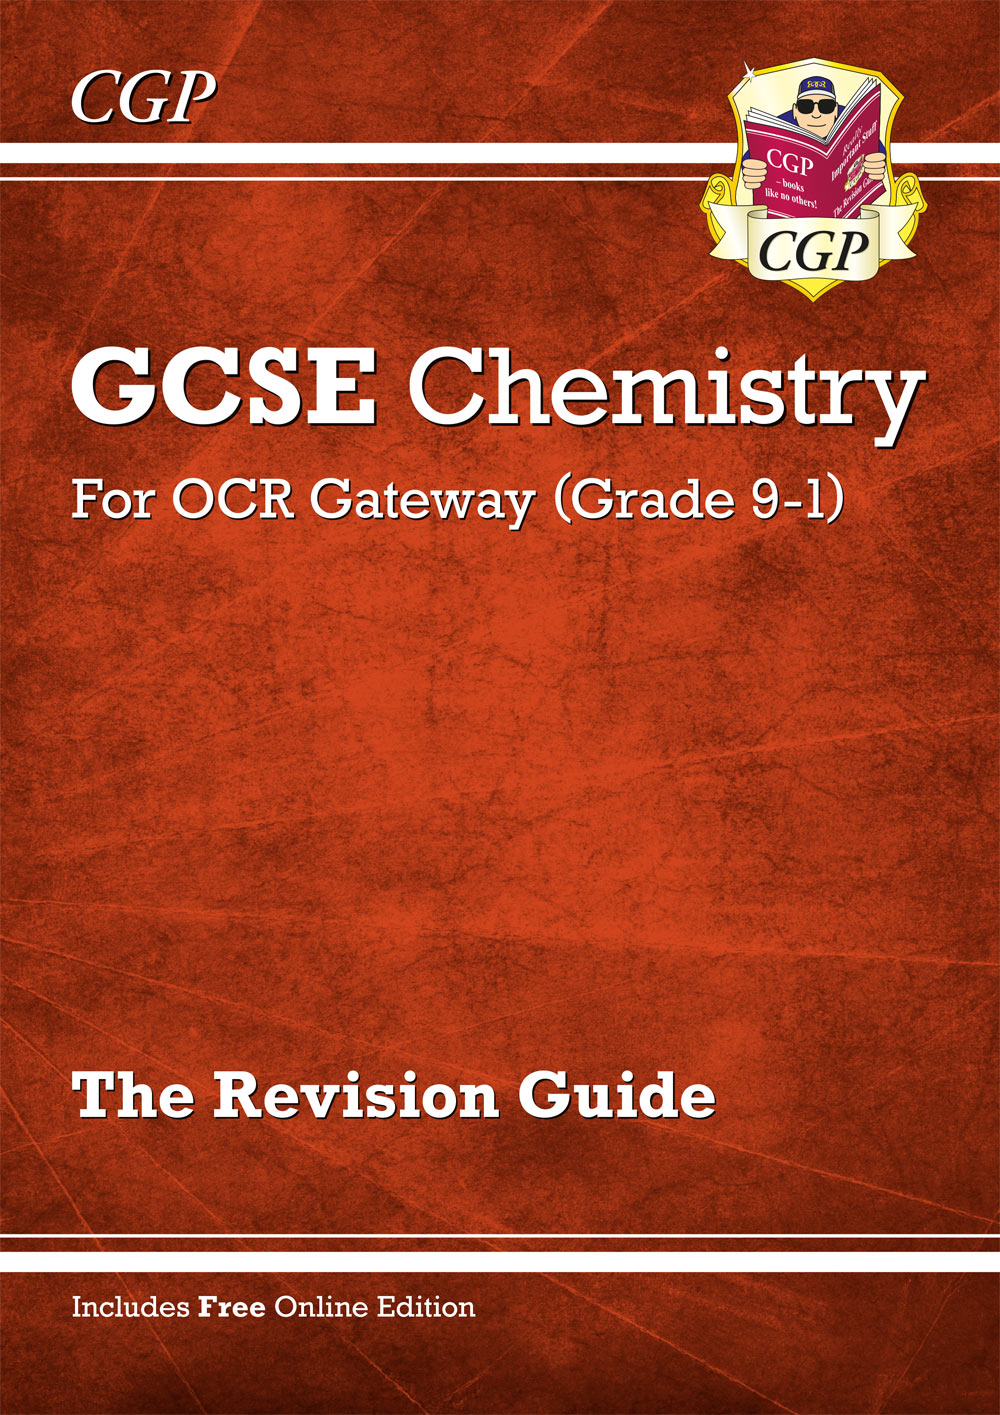 CRR45 - Grade 9-1 GCSE Chemistry: OCR Gateway Revision Guide with Online Edition